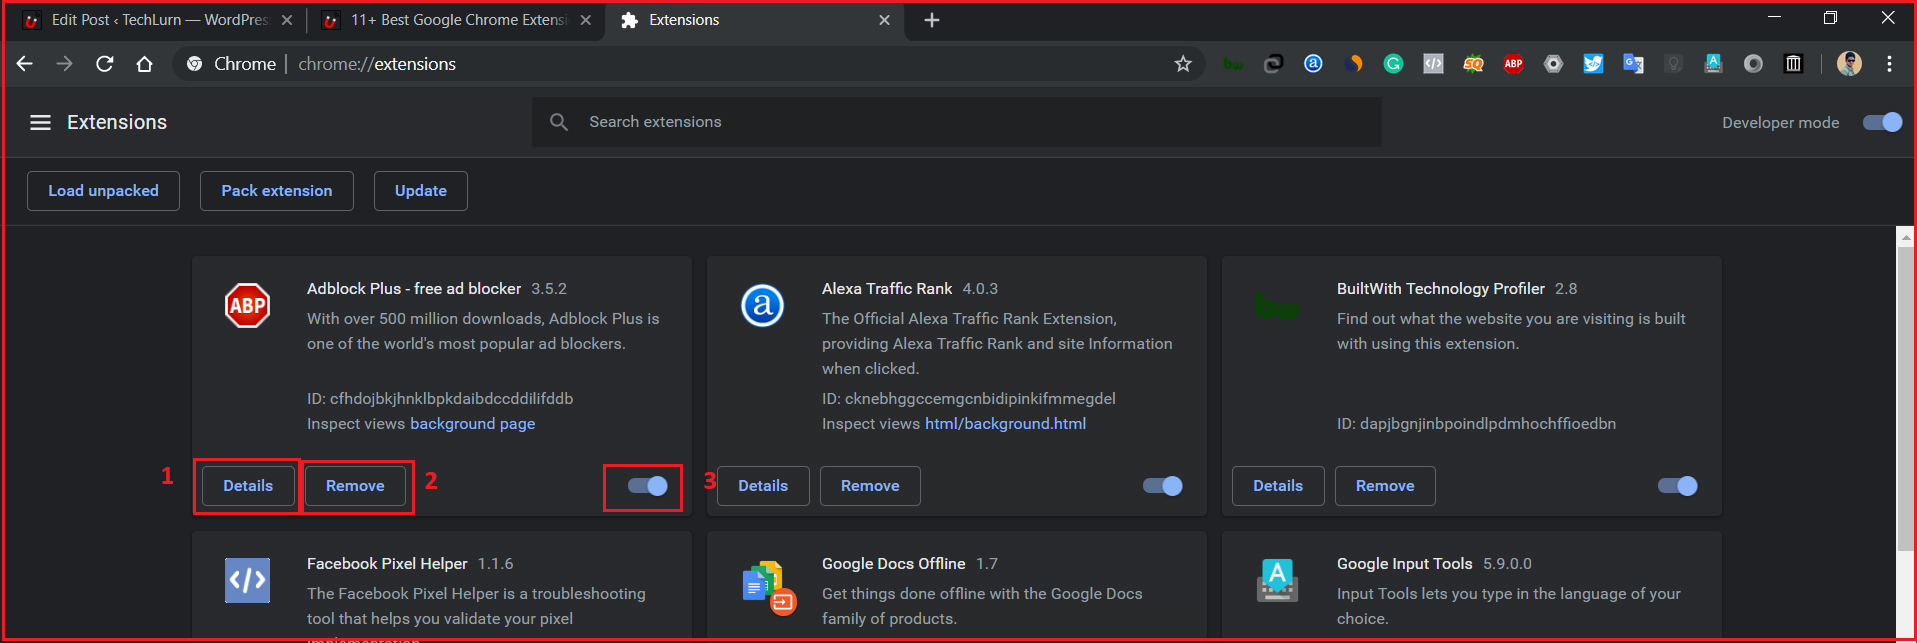 Chrome extensions manager